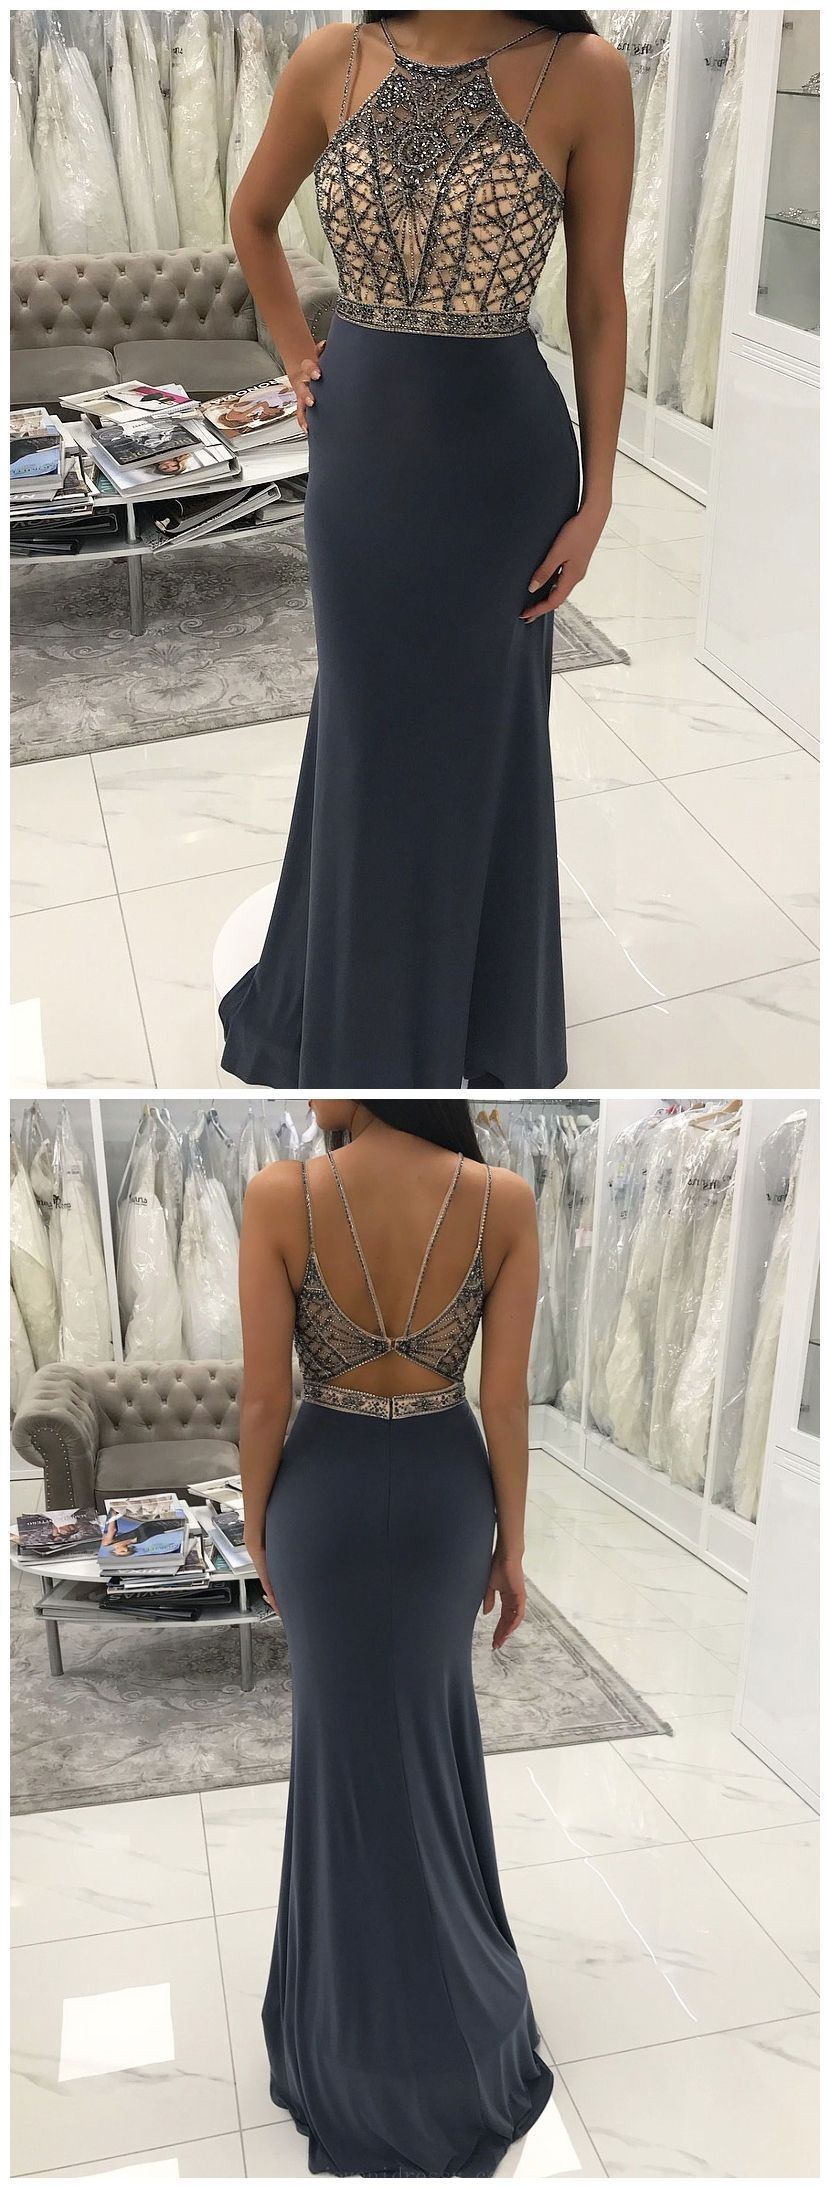 Distinct mermaid prom dresses backless prom dresses prom dresses